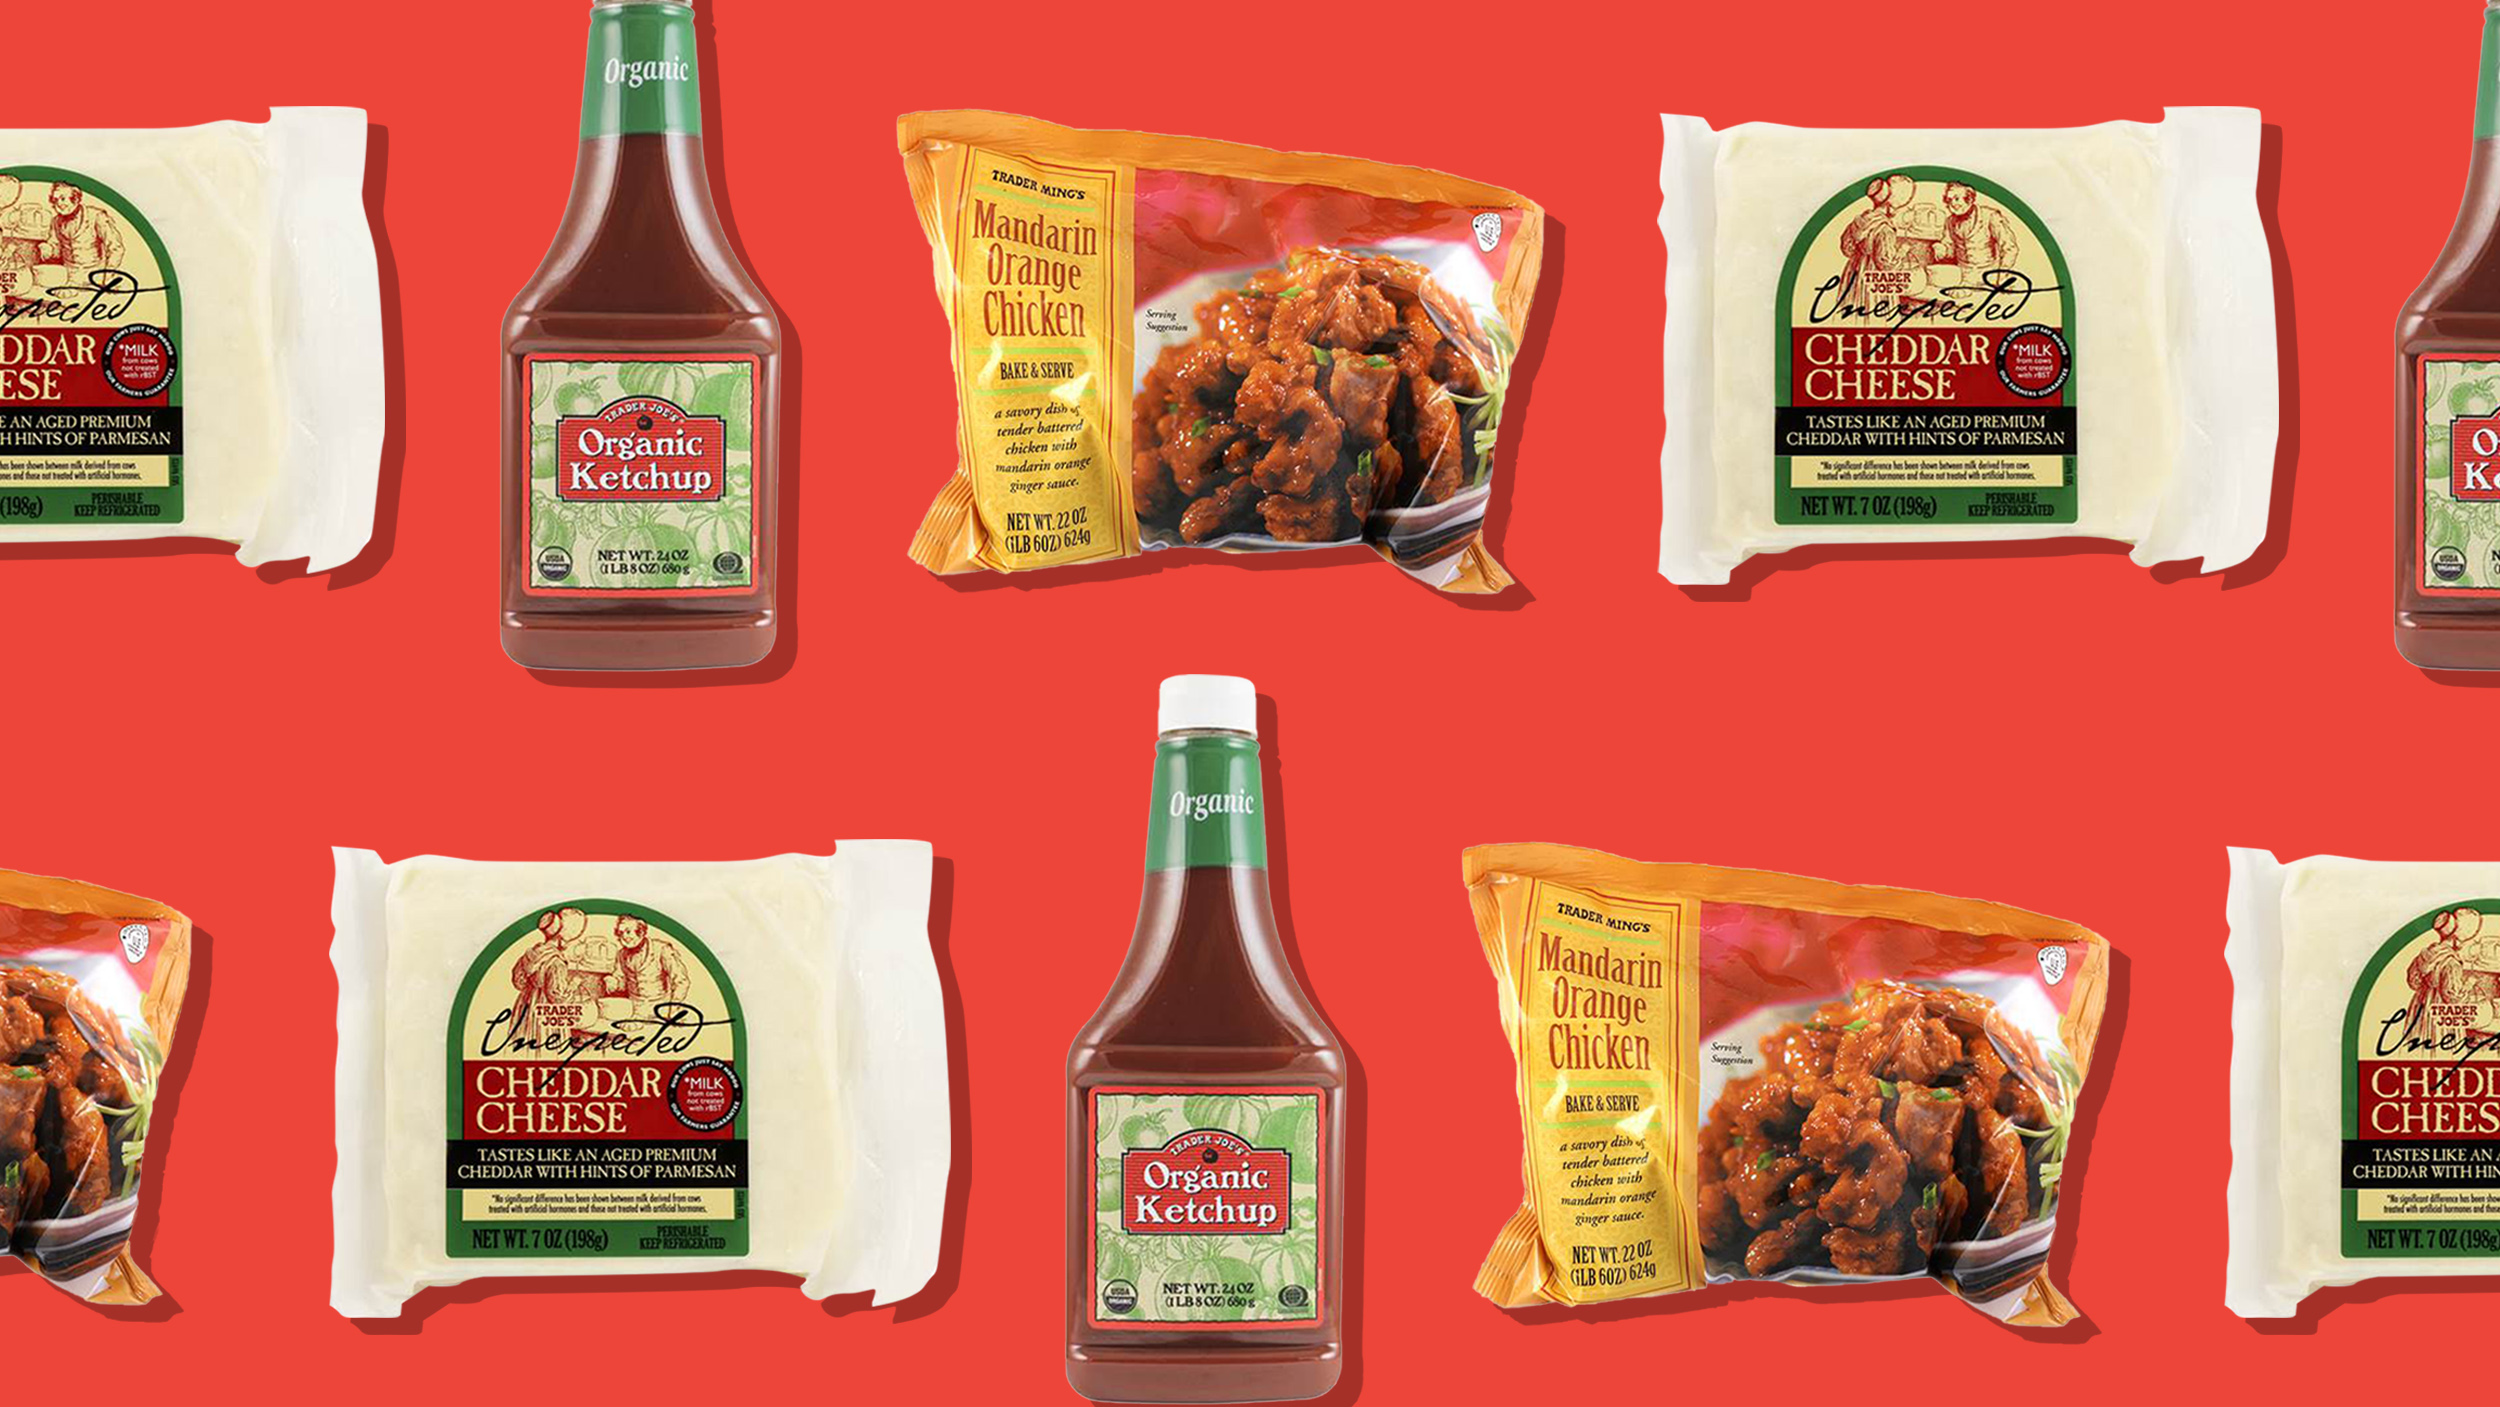 Incredible Se Are Most Beloved Foods At Trader According To Shoppers Trader Joe S Orange Ken Cost Trader Joe S Orange Ken Reddit nice food Trader Joes Orange Chicken